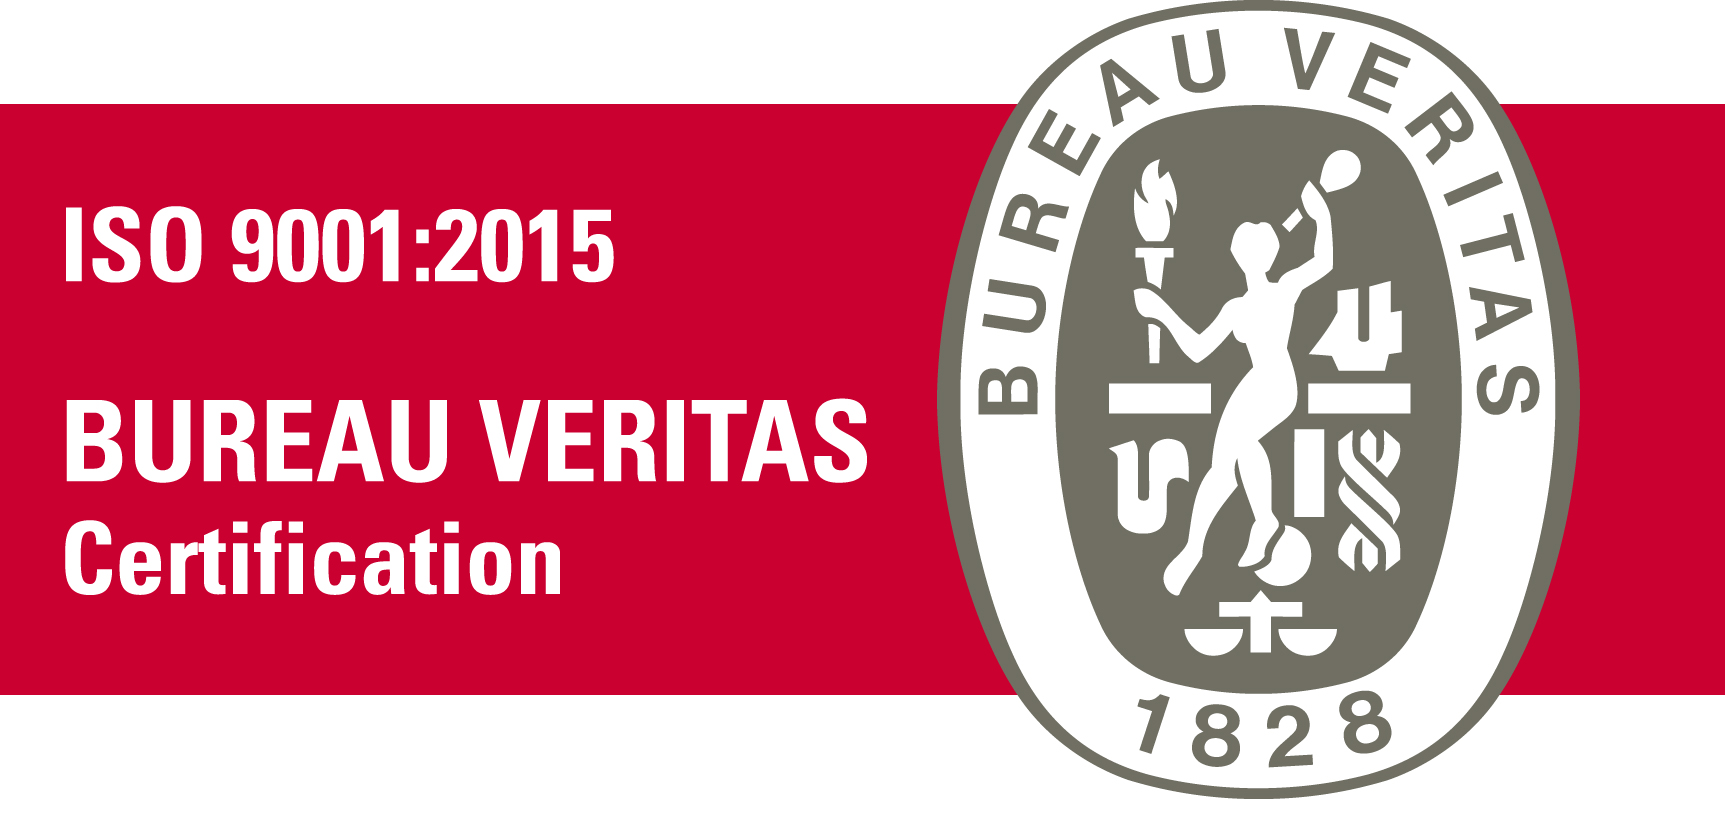 Bureau Veritas - Certification ISO 9001:2015